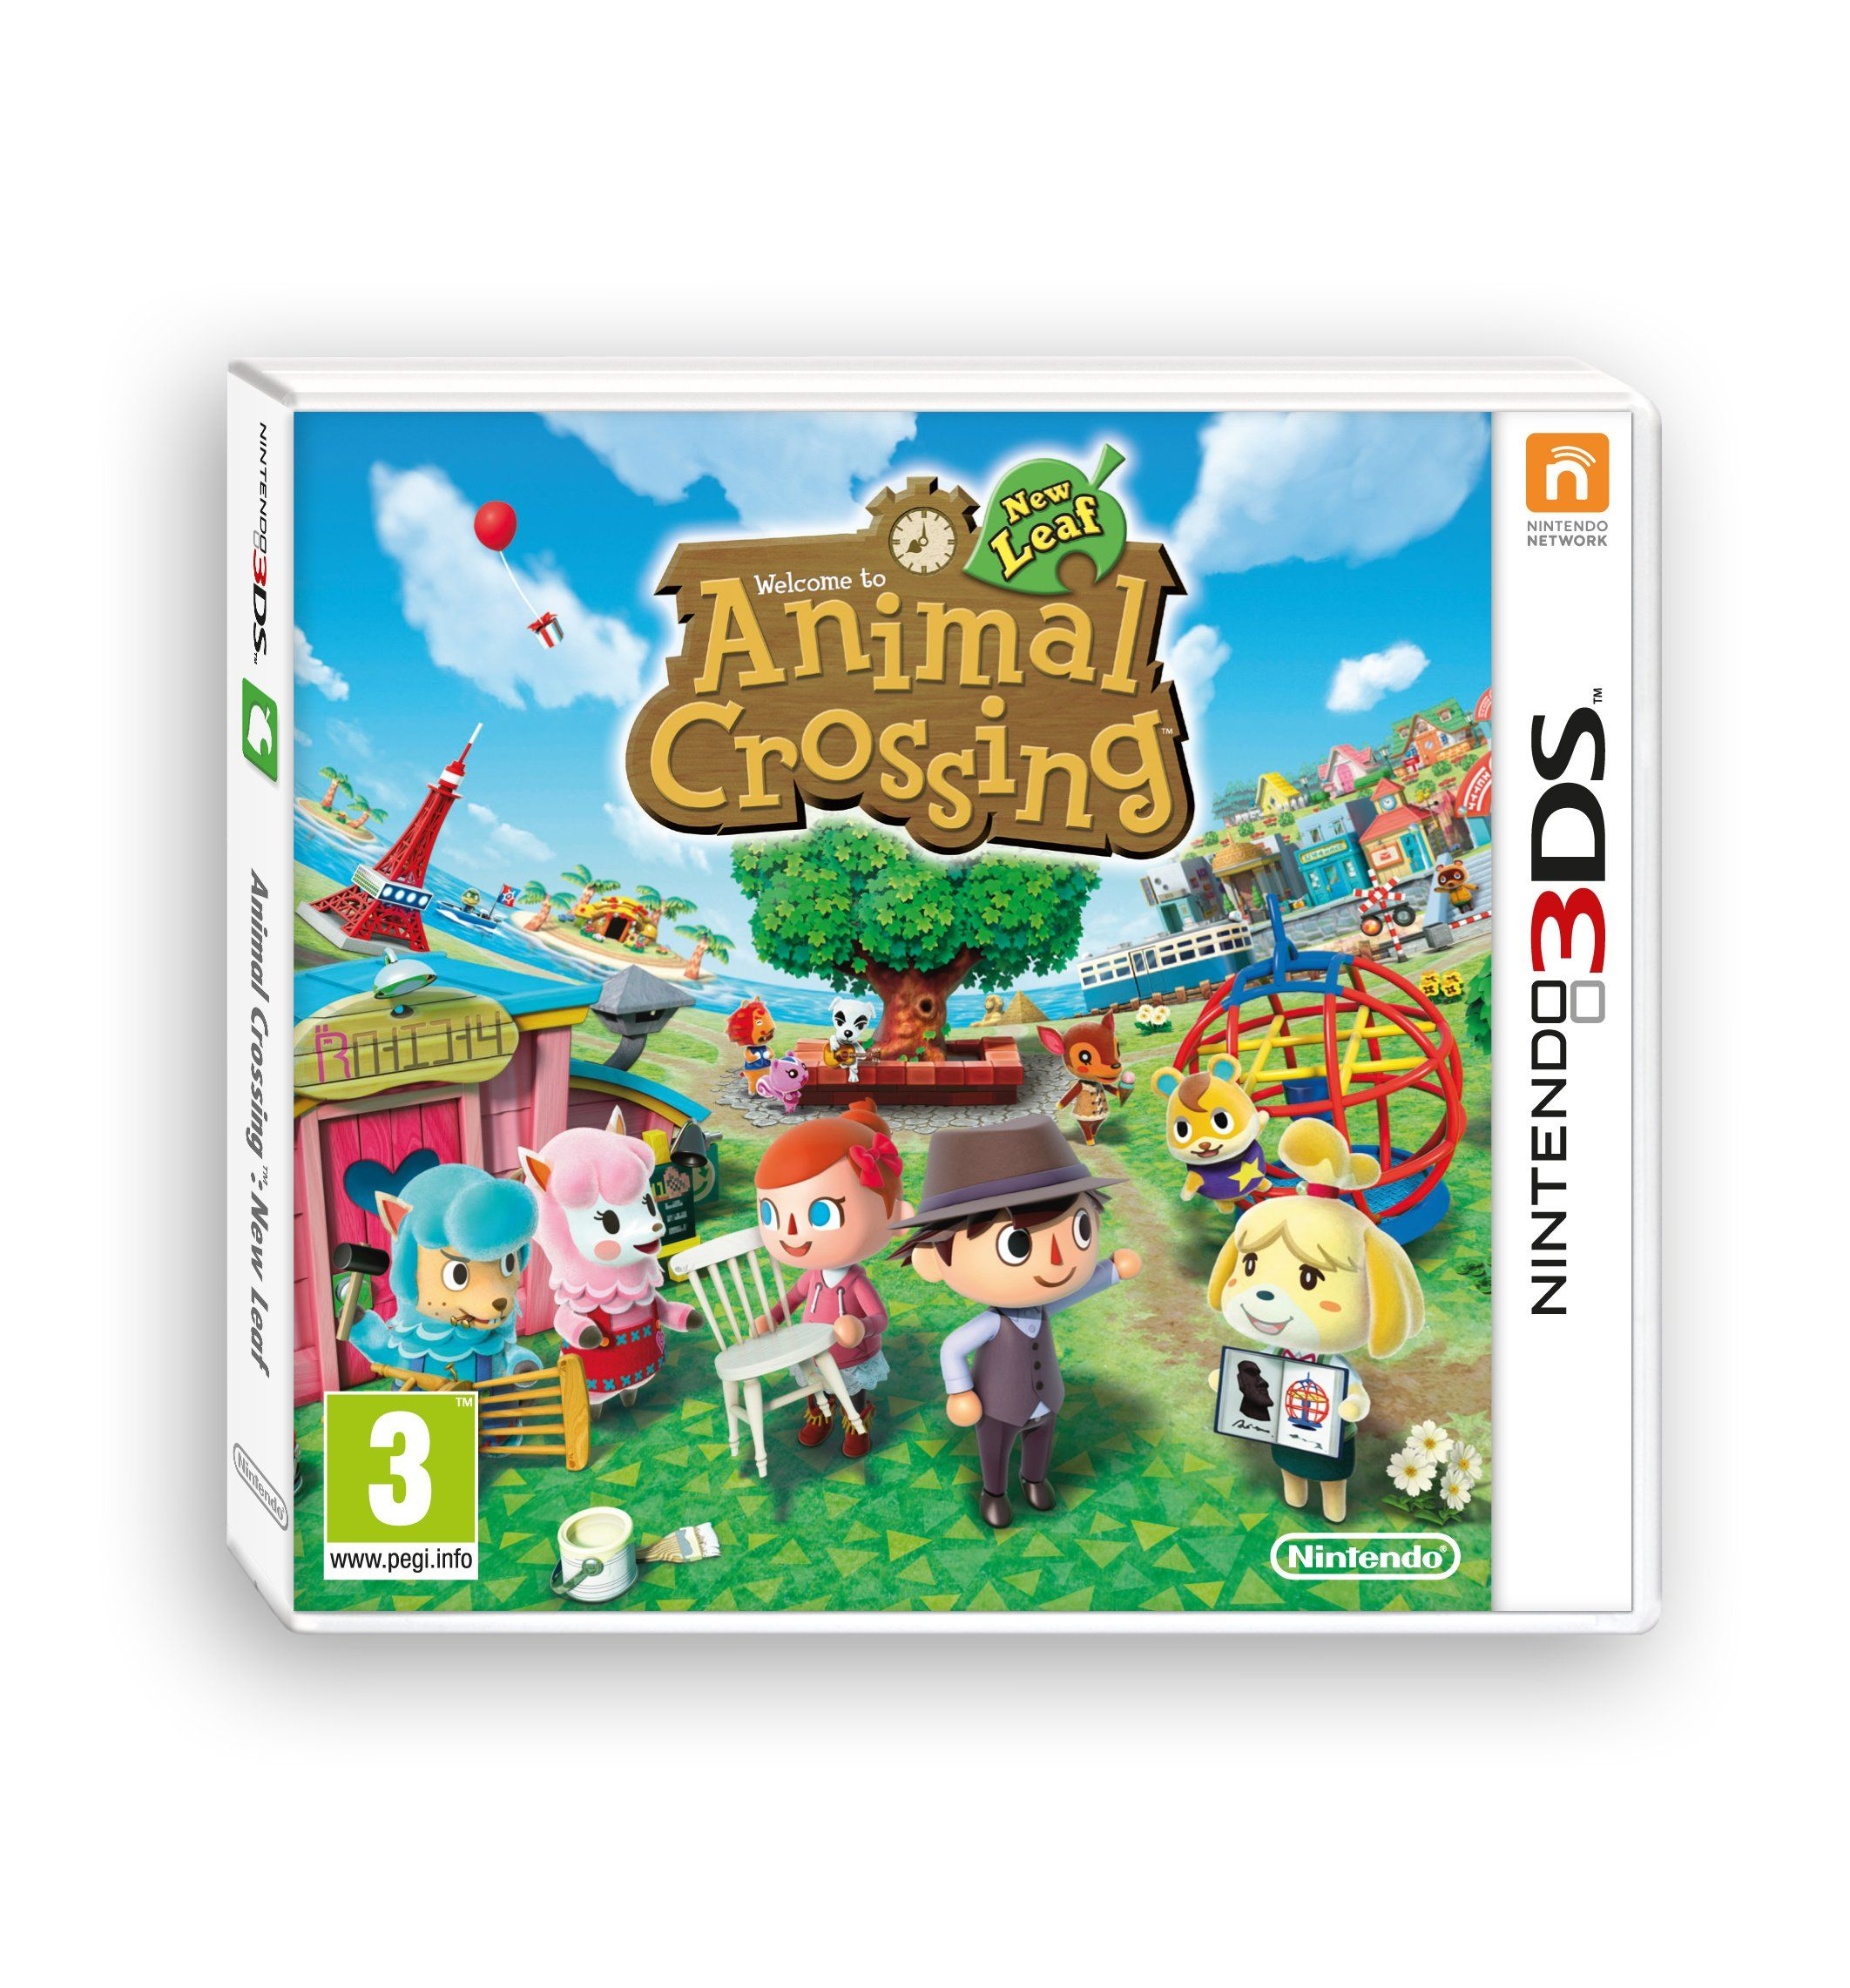 19+ Animal crossing 3ds console ideas in 2021